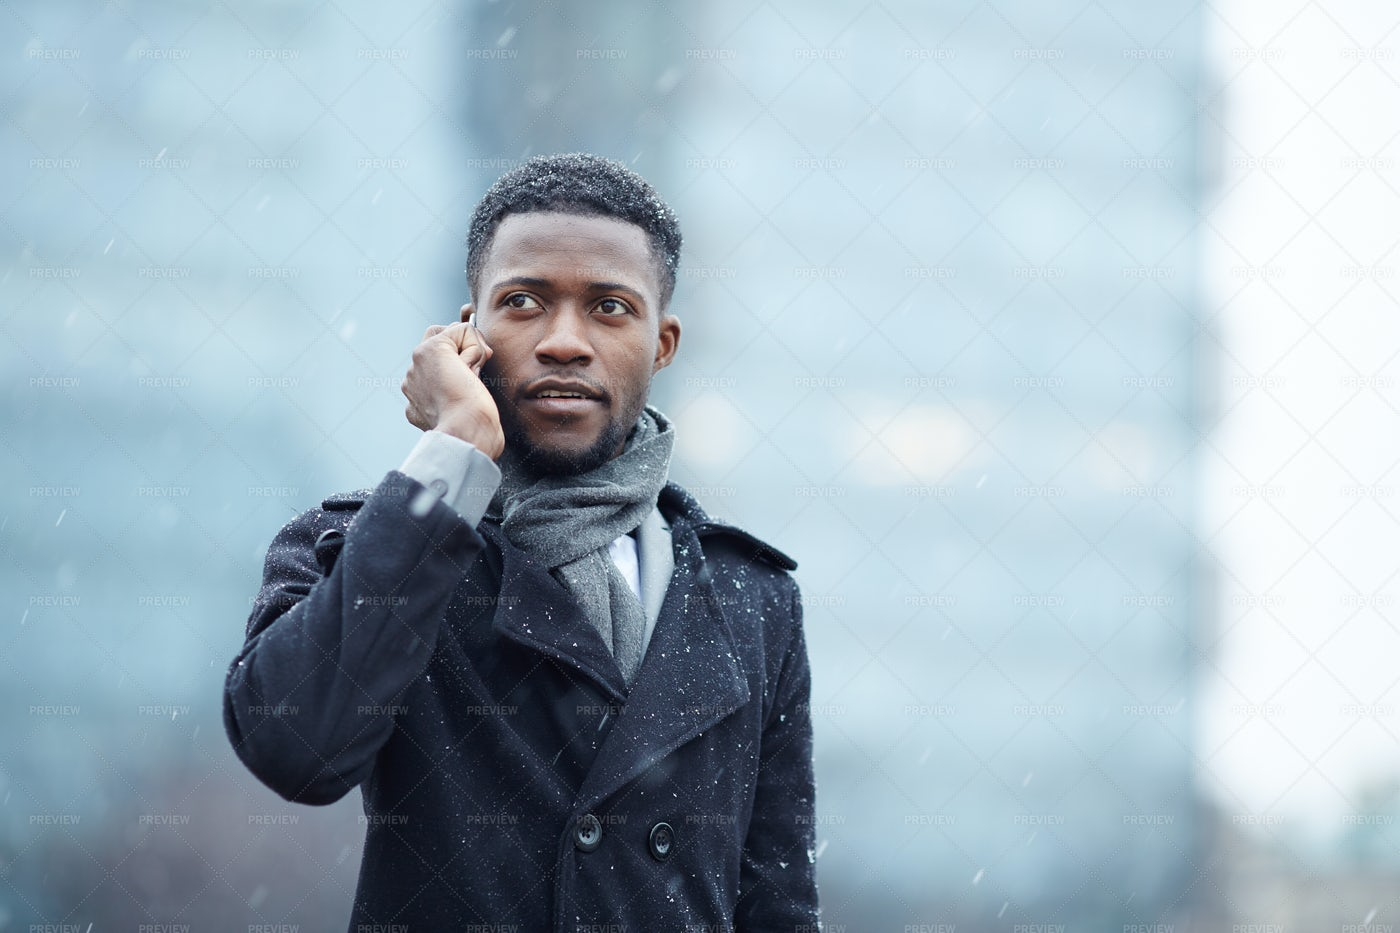 Handsome African Man On Phone In Street: Stock Photos